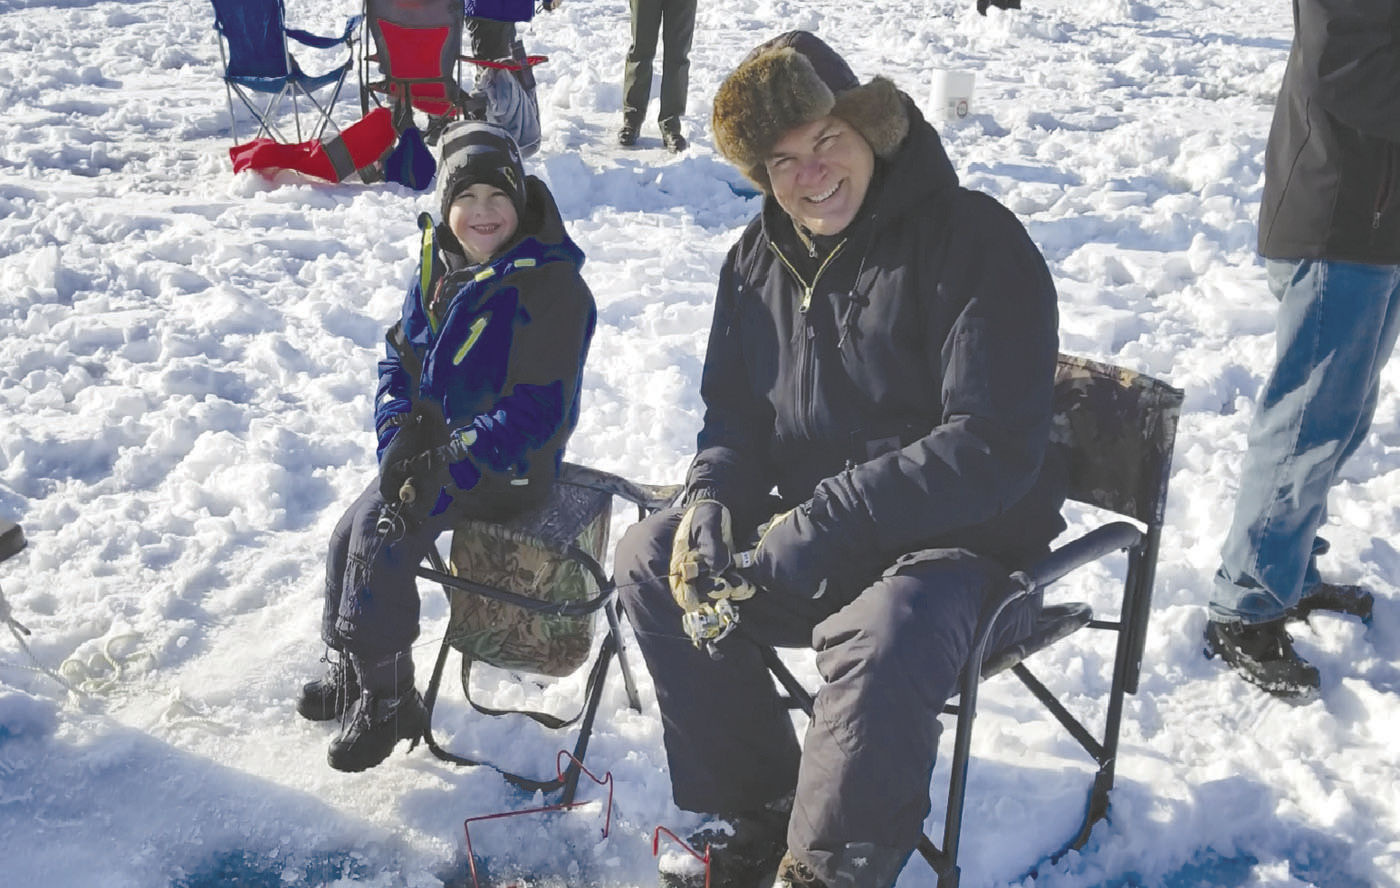 ice fishing lawn chair back massage eagan day sun this week hometownsource com